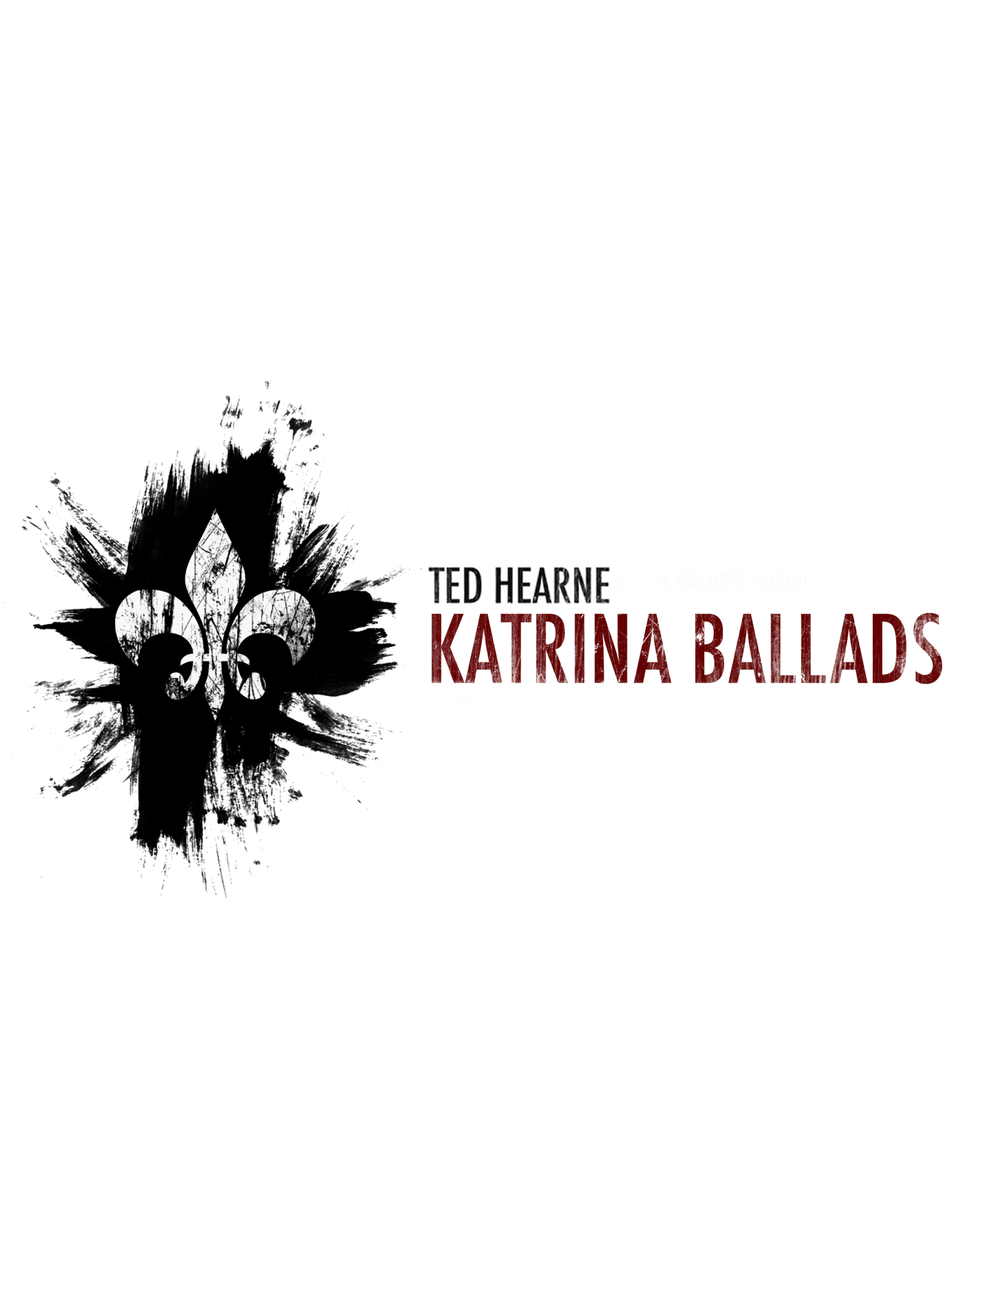 Katrina Ballads score design by Liberty Straney